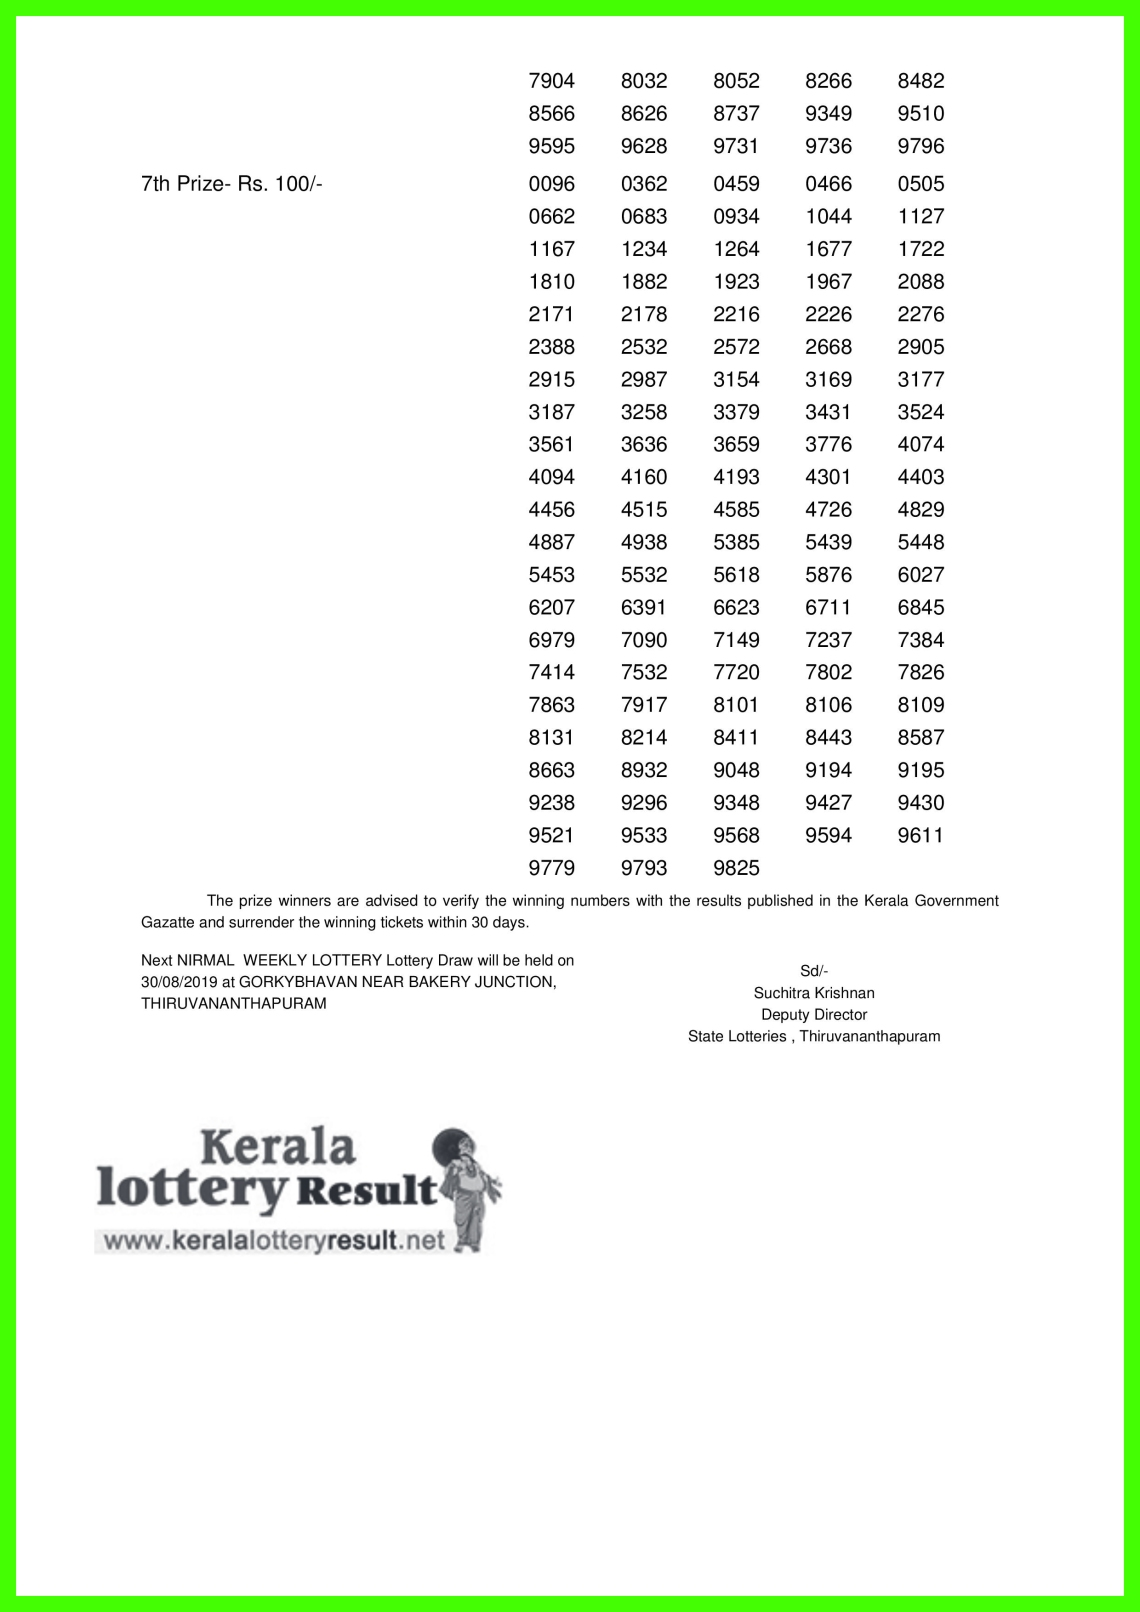 NIRMAL WEEKLY LOTTERY LOTTERY NO. NR-133rd DRAW scheduled on 09.08.2019-page-002